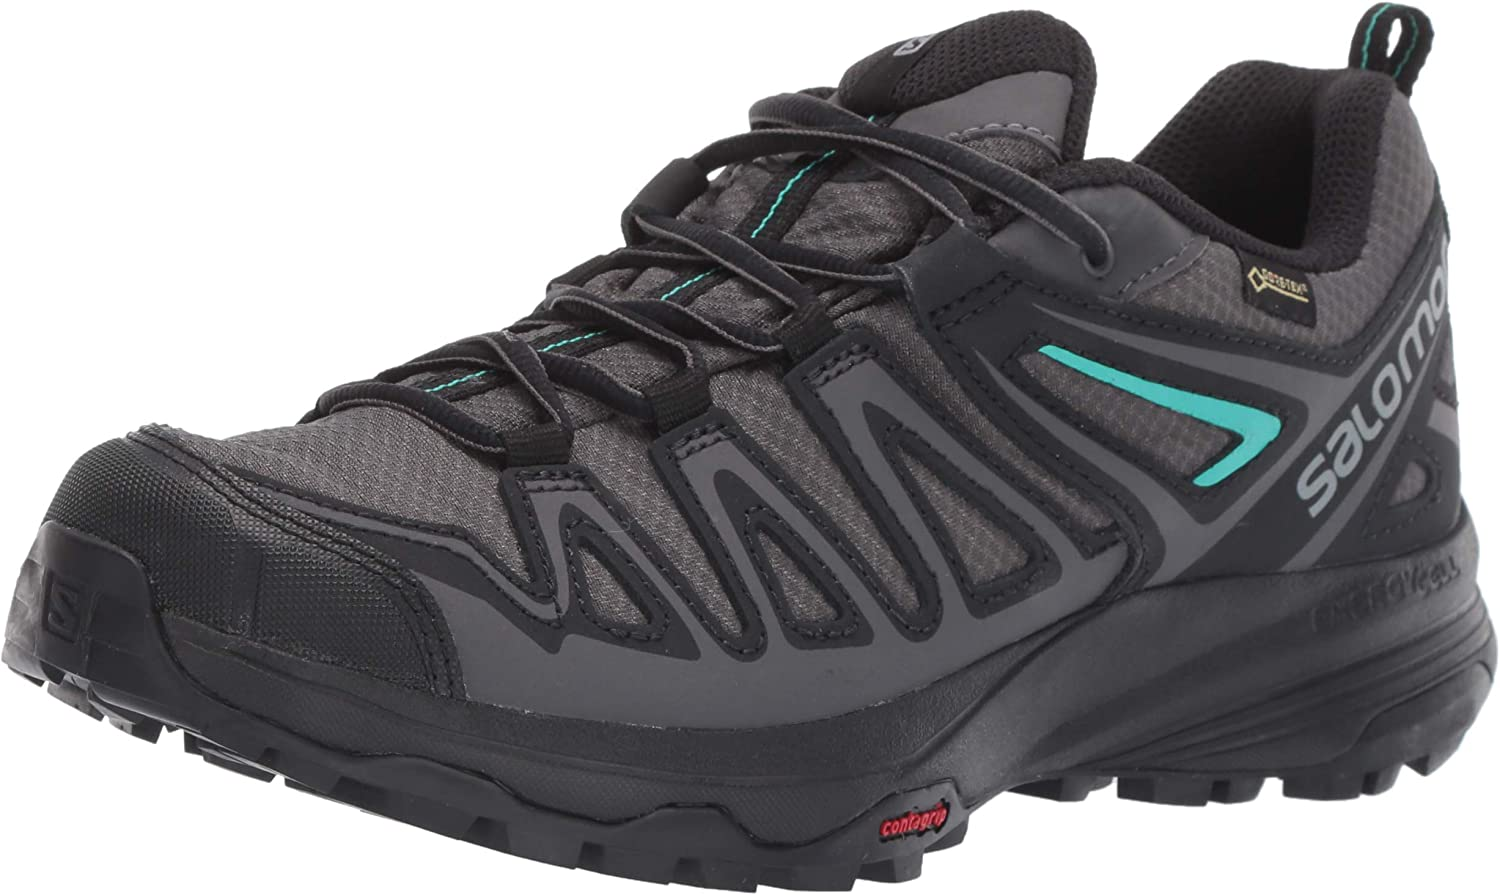 Salomon Women s X Crest GORE-TEX Hiking Shoes